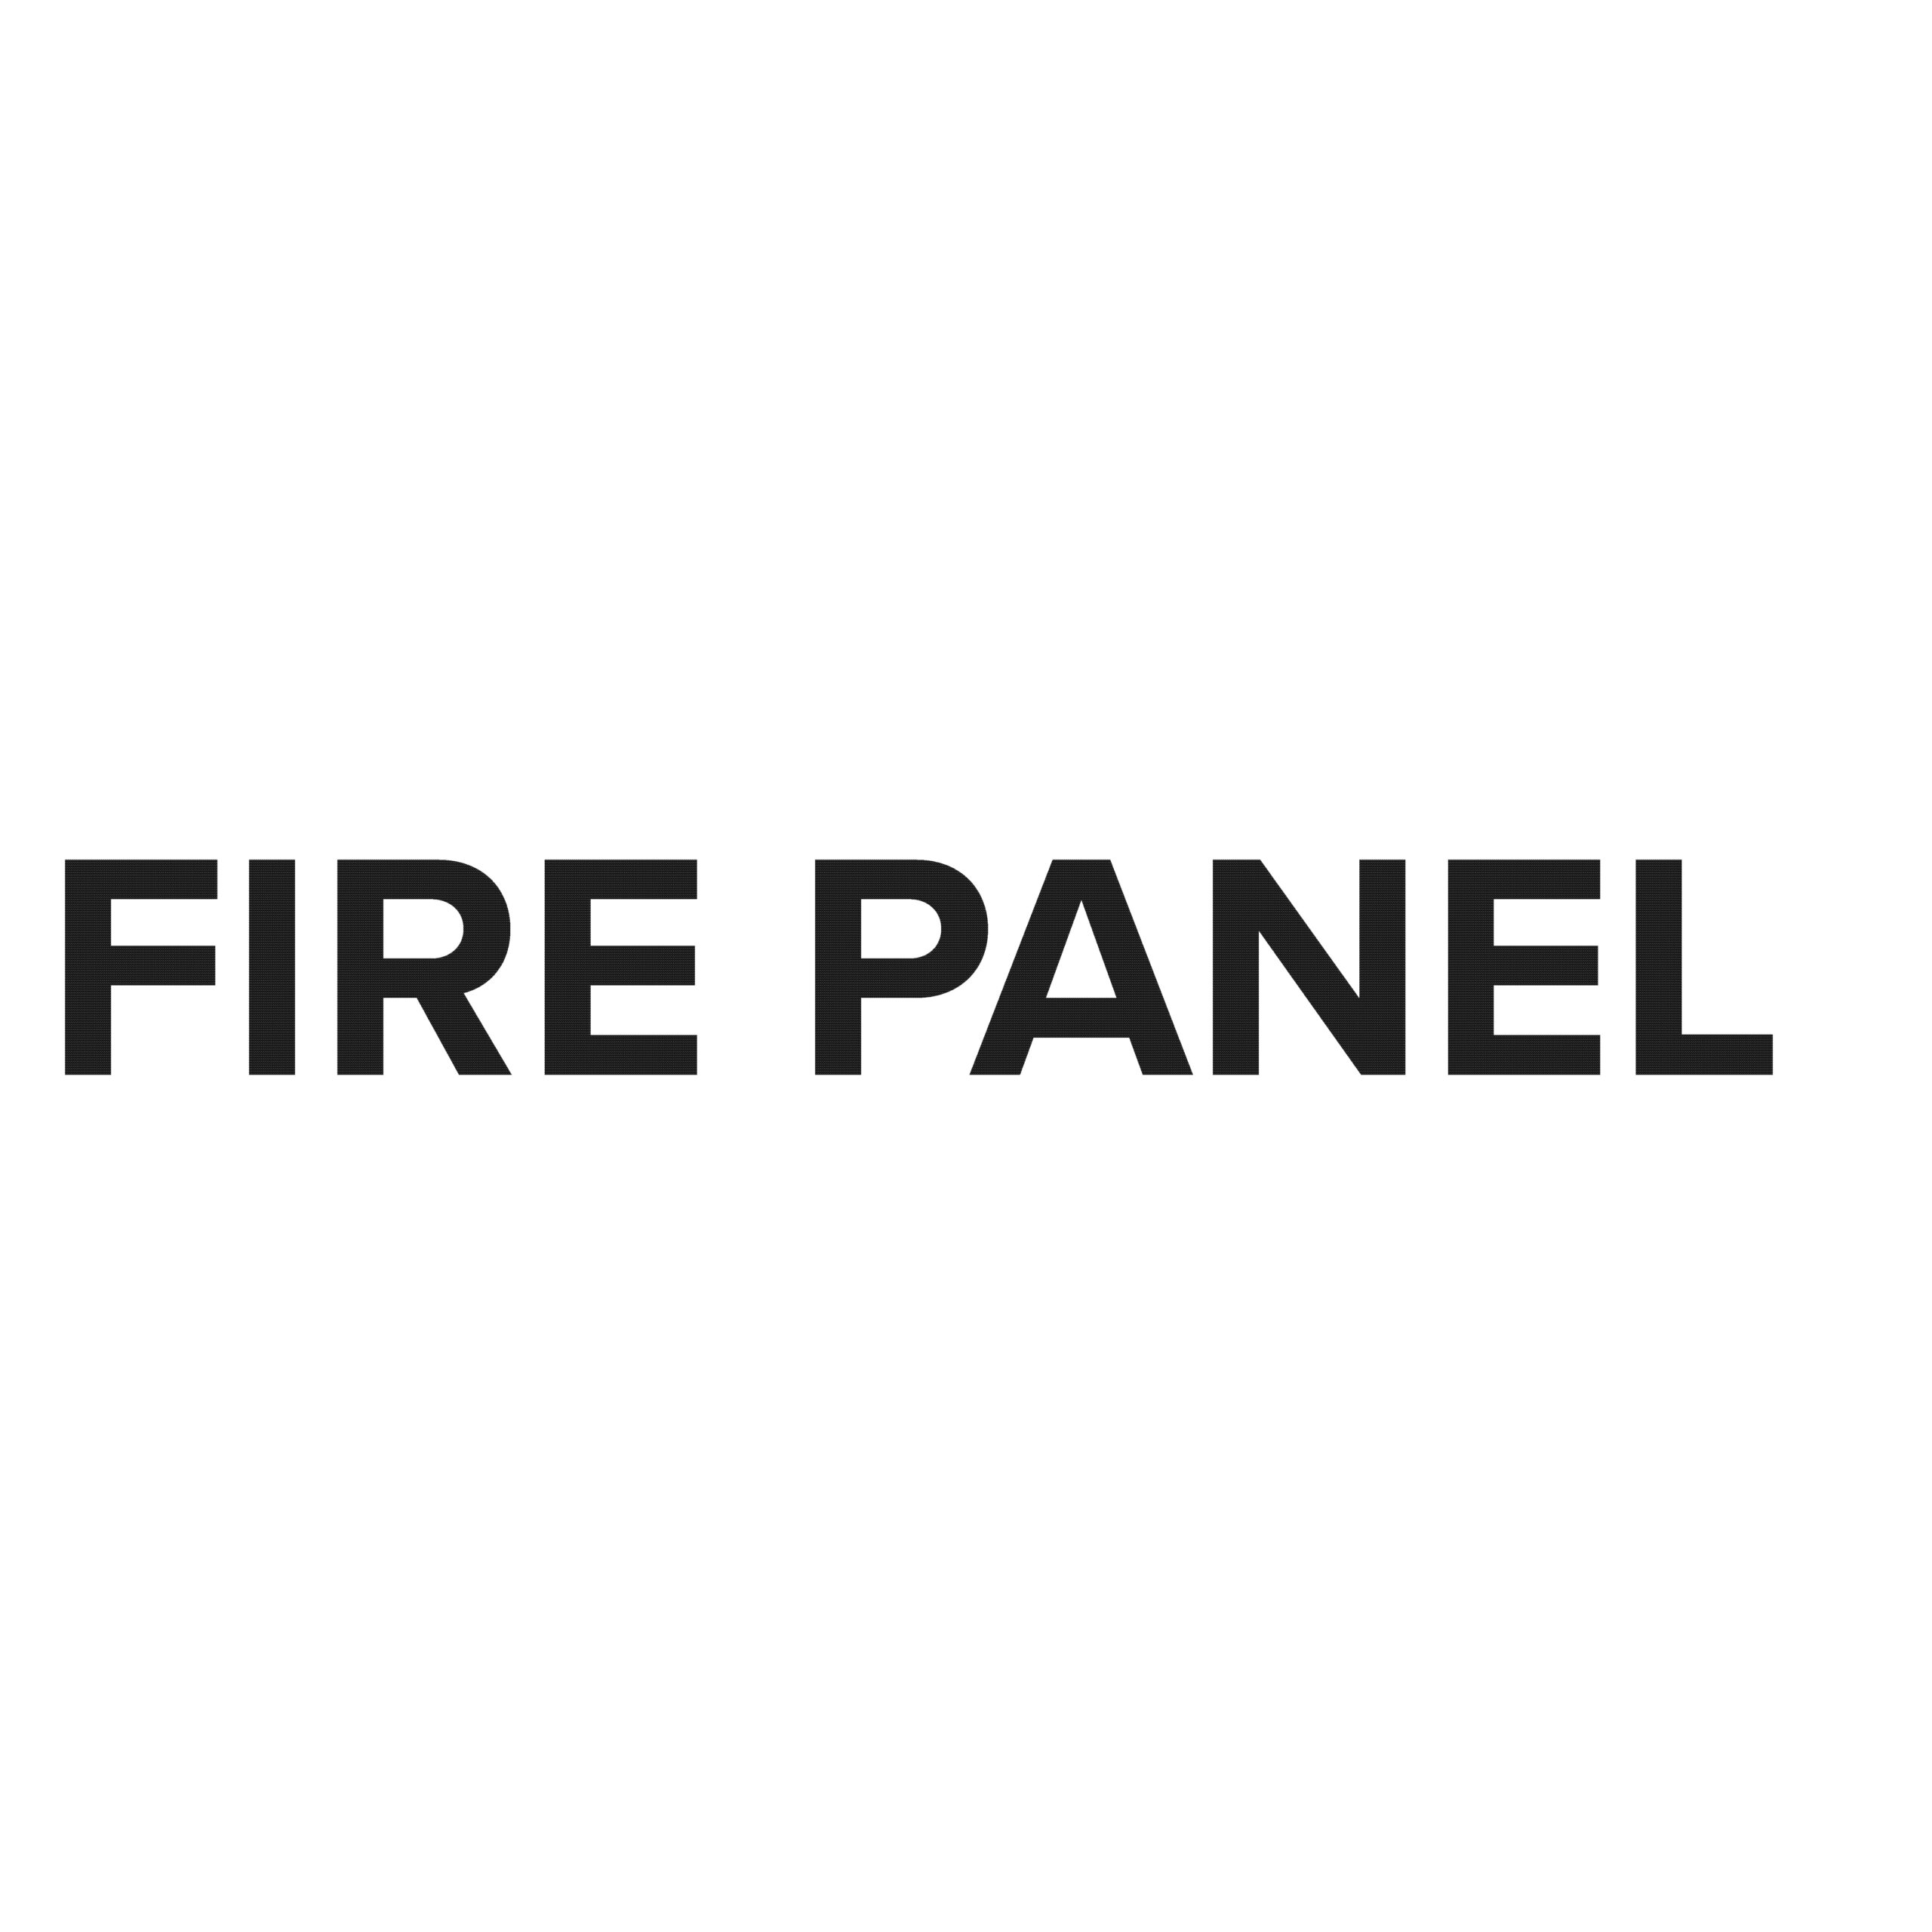 FIRE PANEL SIGNS scaled